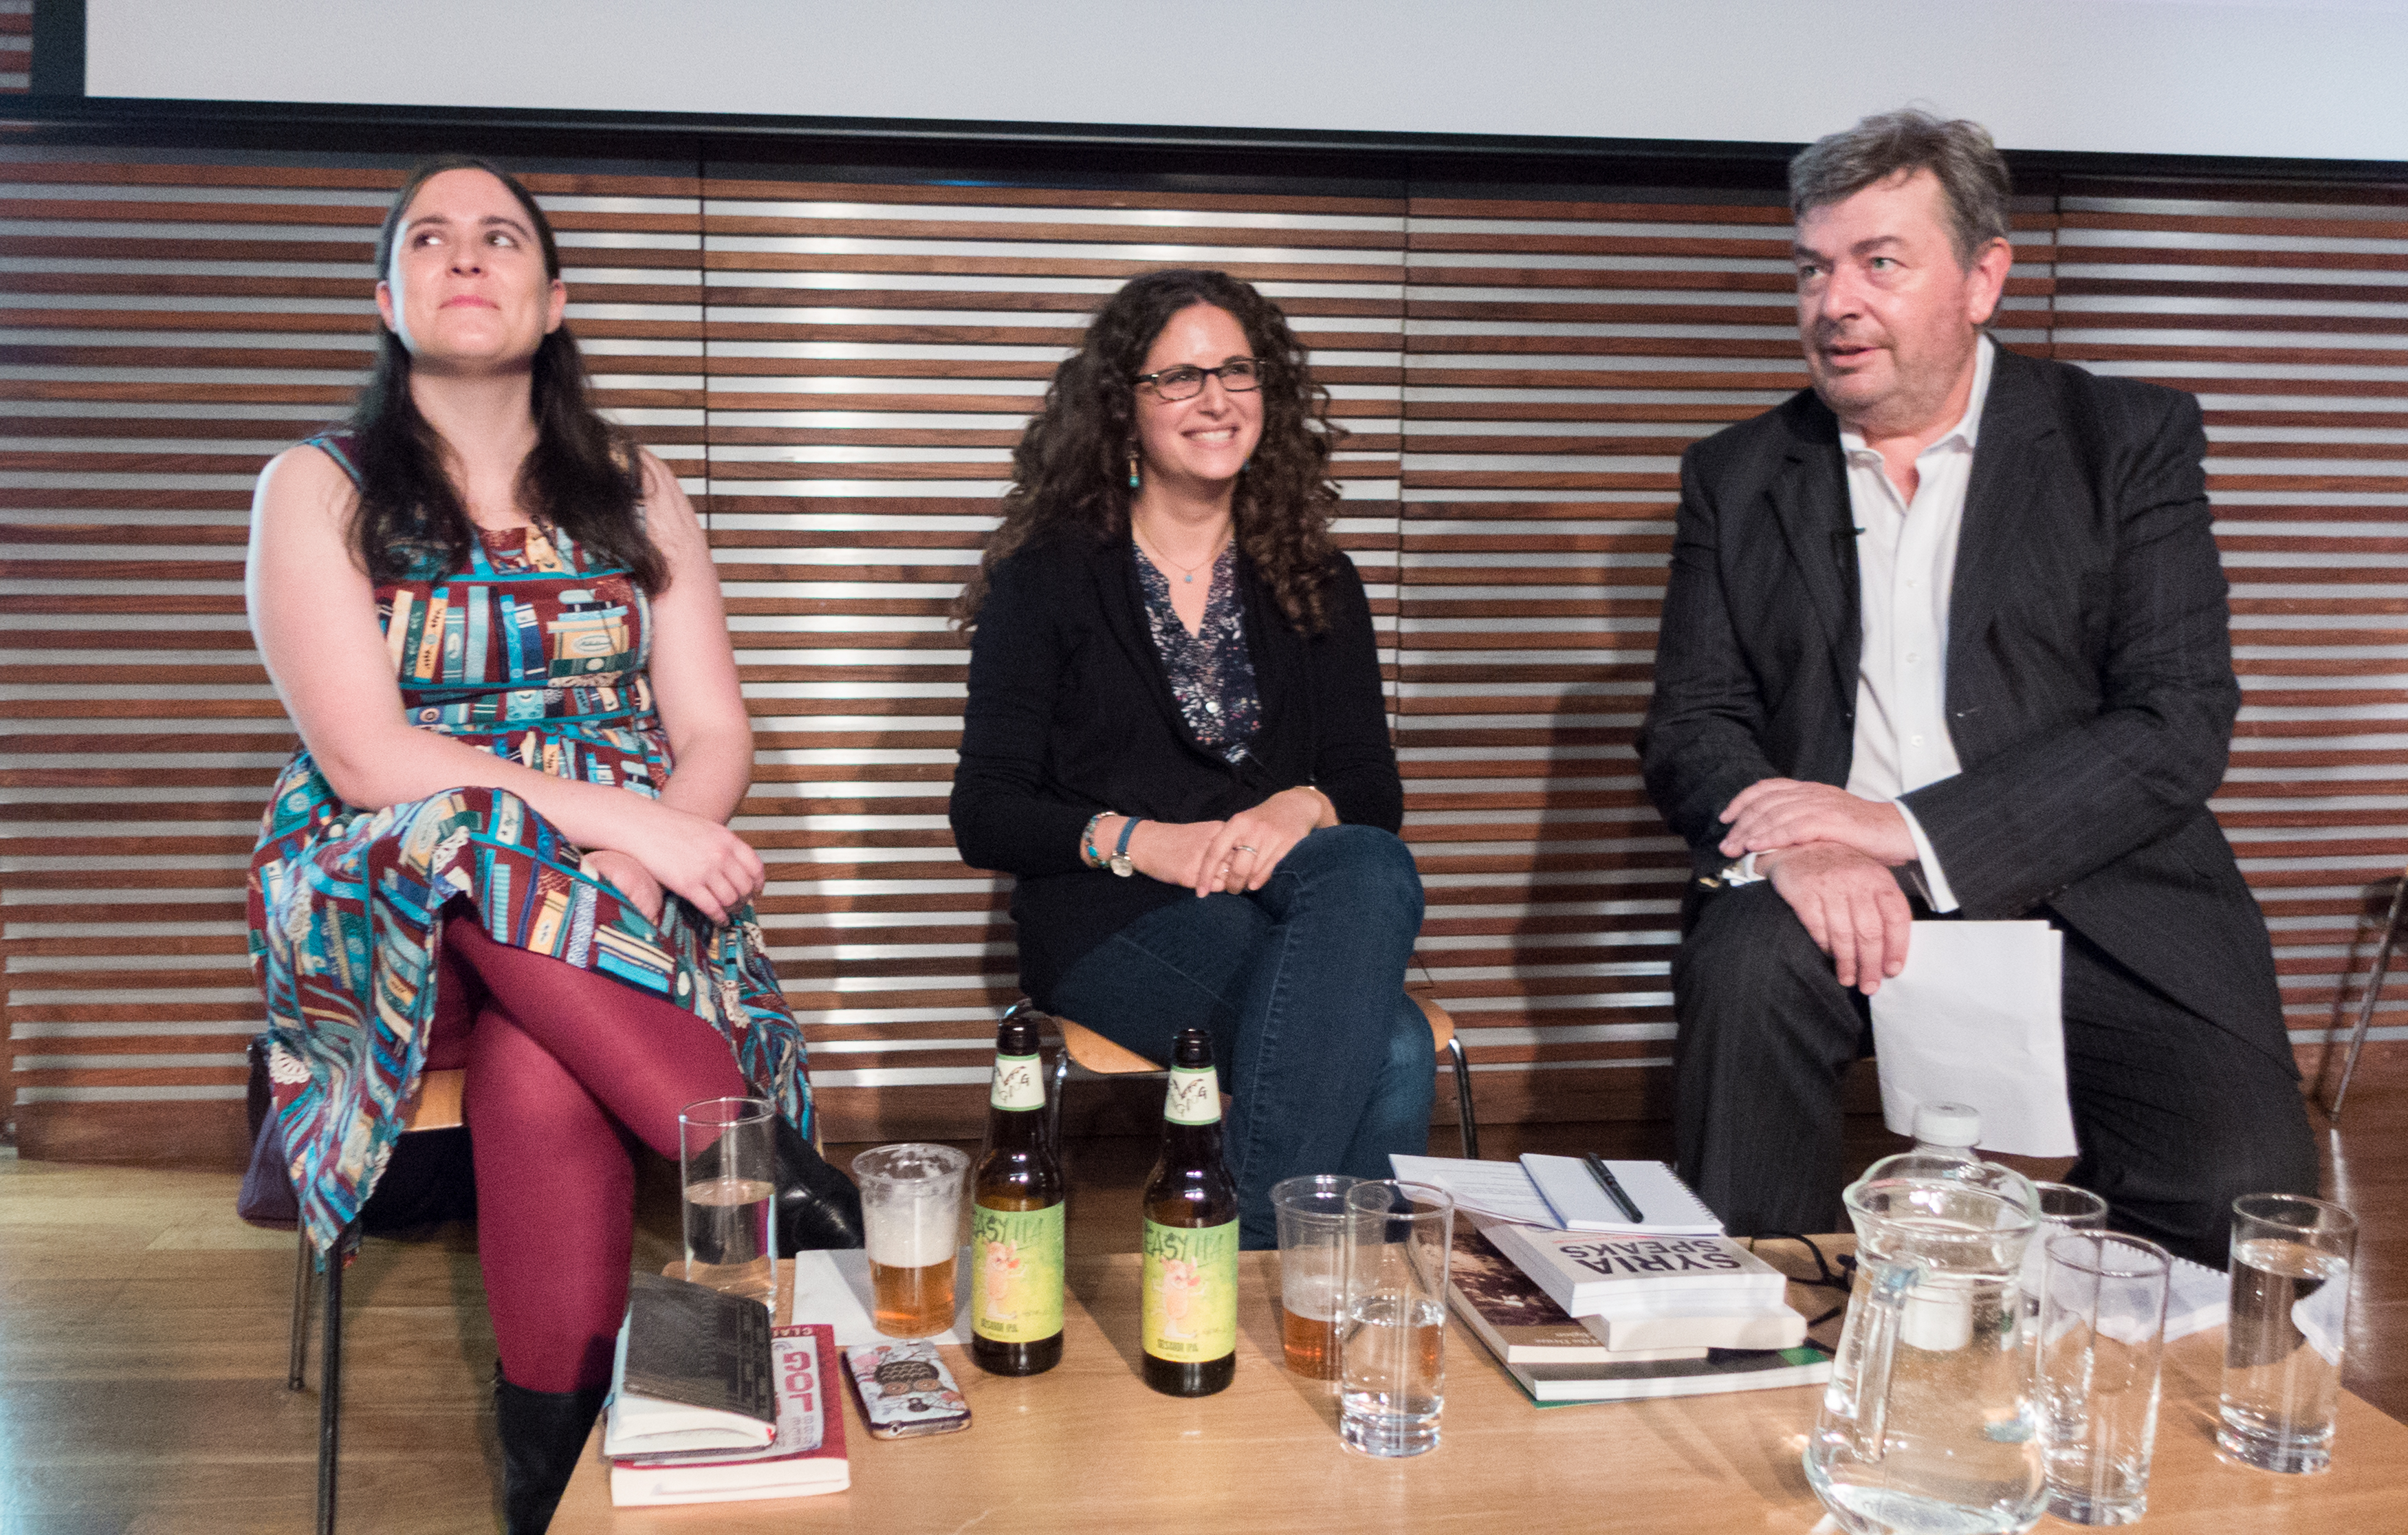 Young adult author Claire Hennessy and Saqi Books publisher Lynn Gaspard joined journalist David Aaronovitch in conversation.